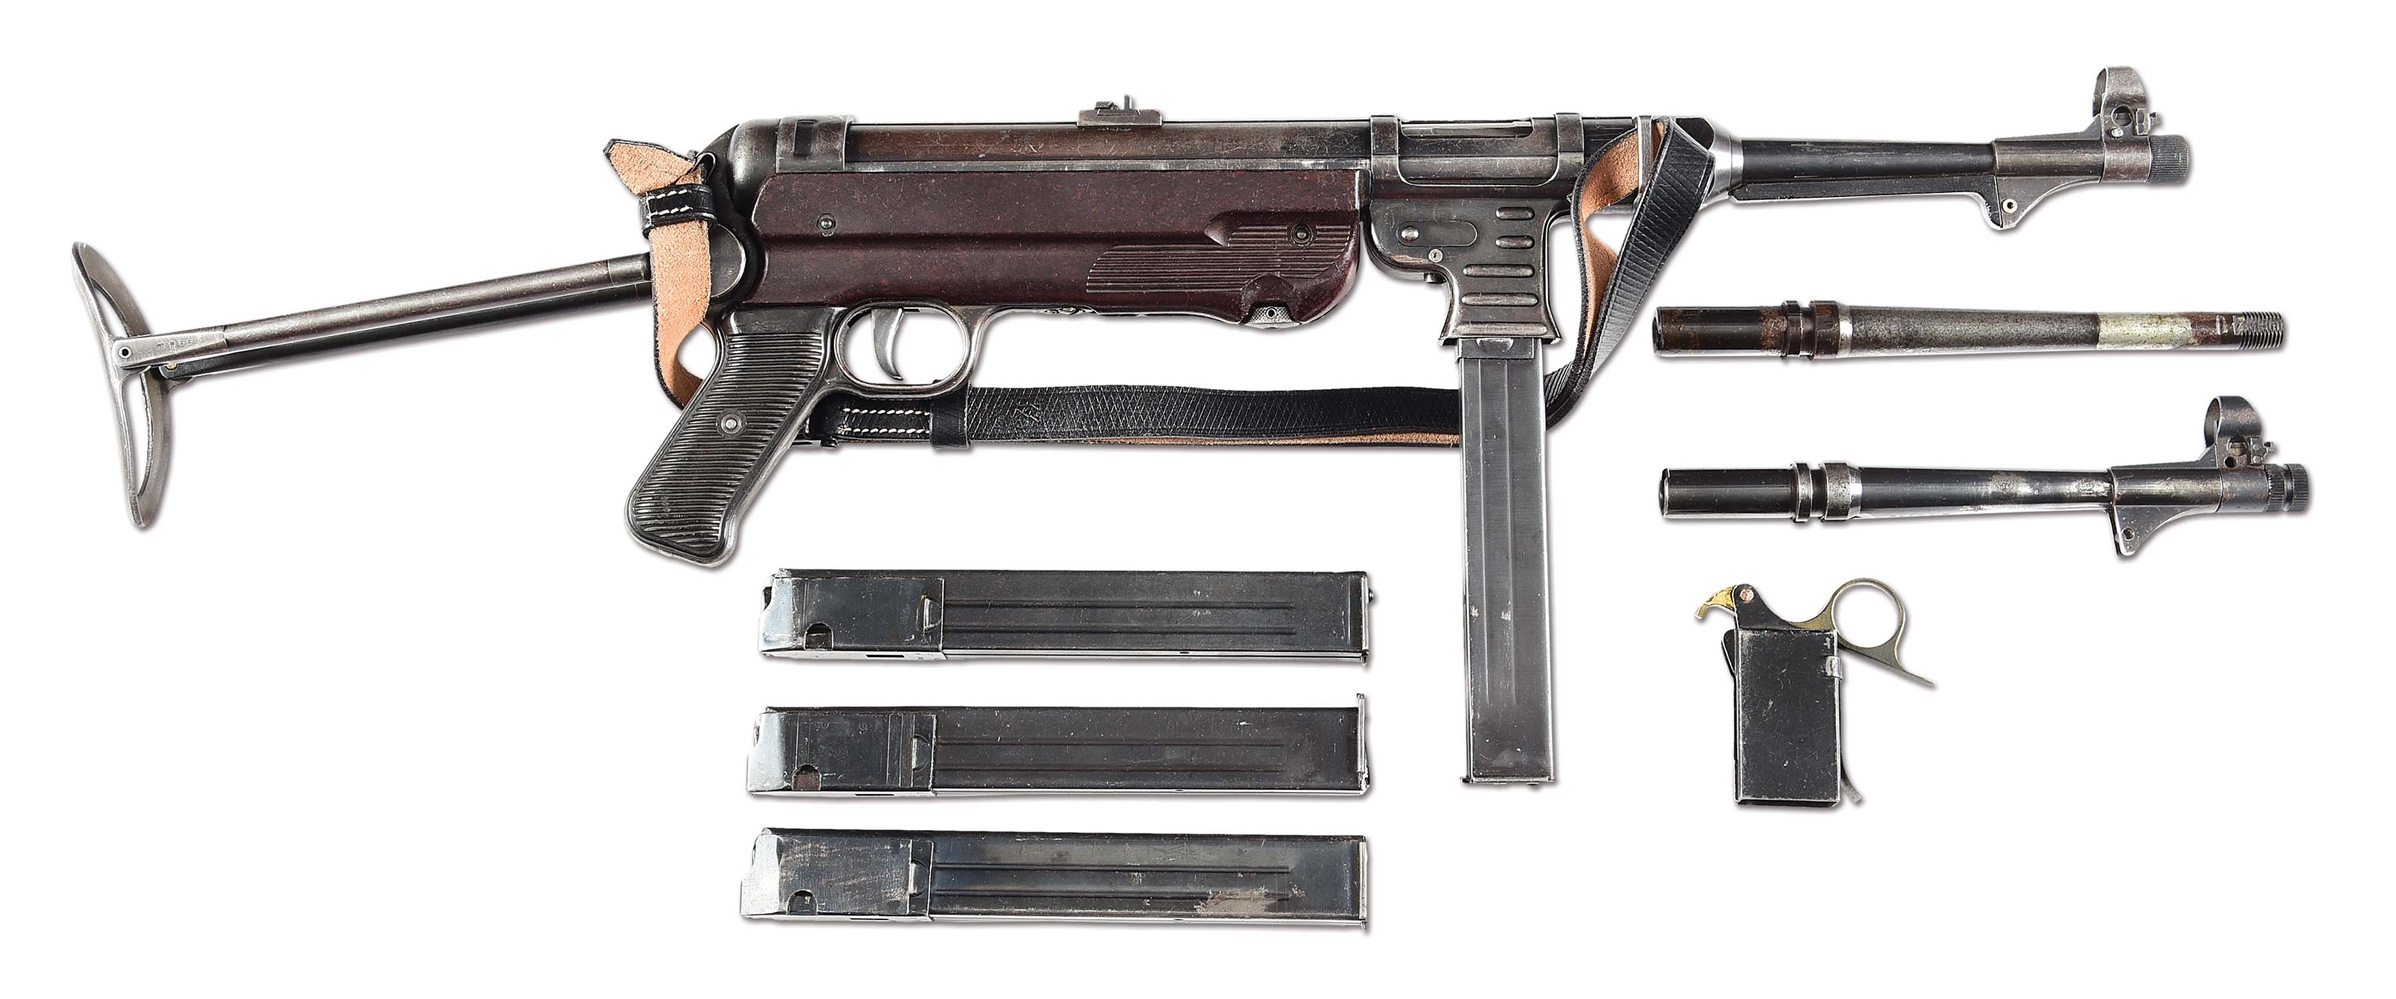 (N) NICELY ACCESSORIZED GERMAN WORLD WAR 2 ERMA MP-40 MACHINE GUN (CURIO & RELIC).